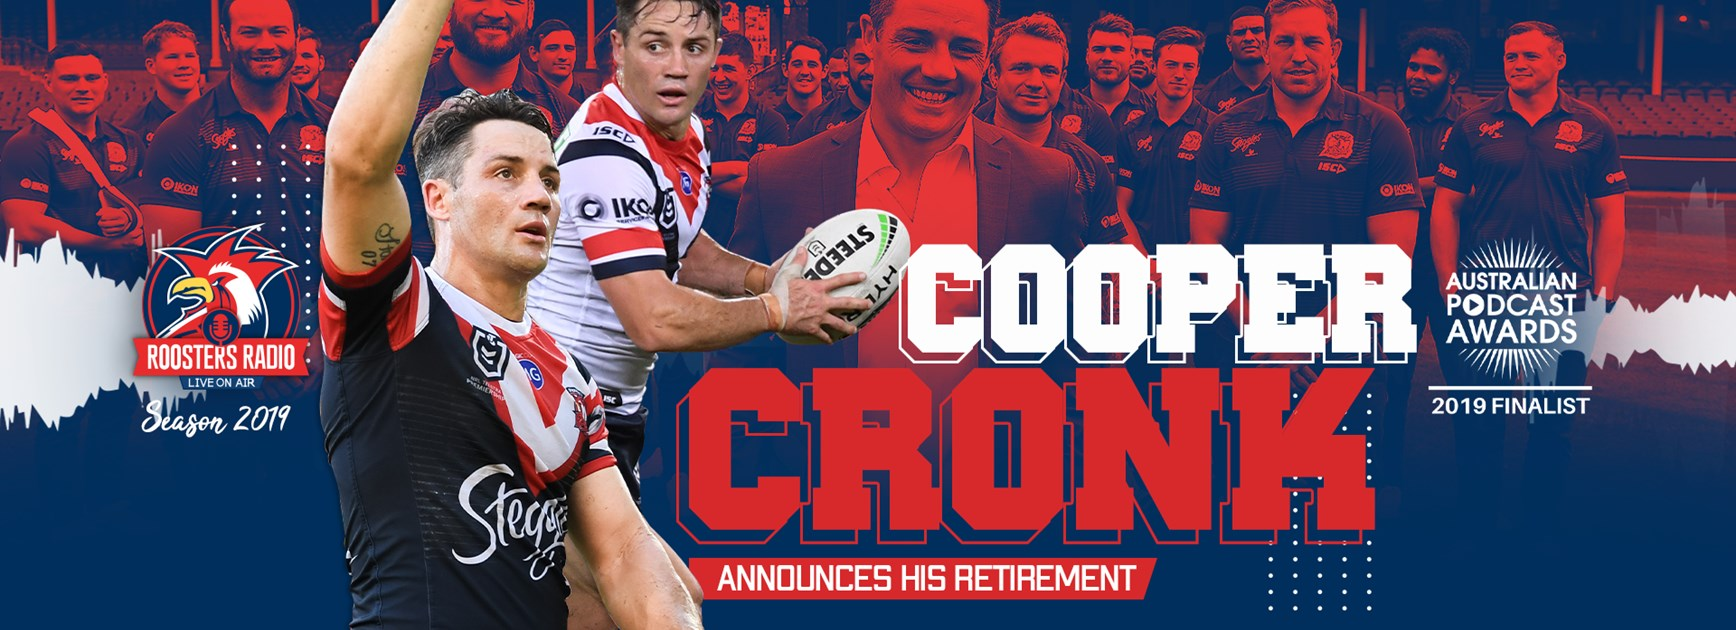 Roosters Radio | Cronk's Retirement